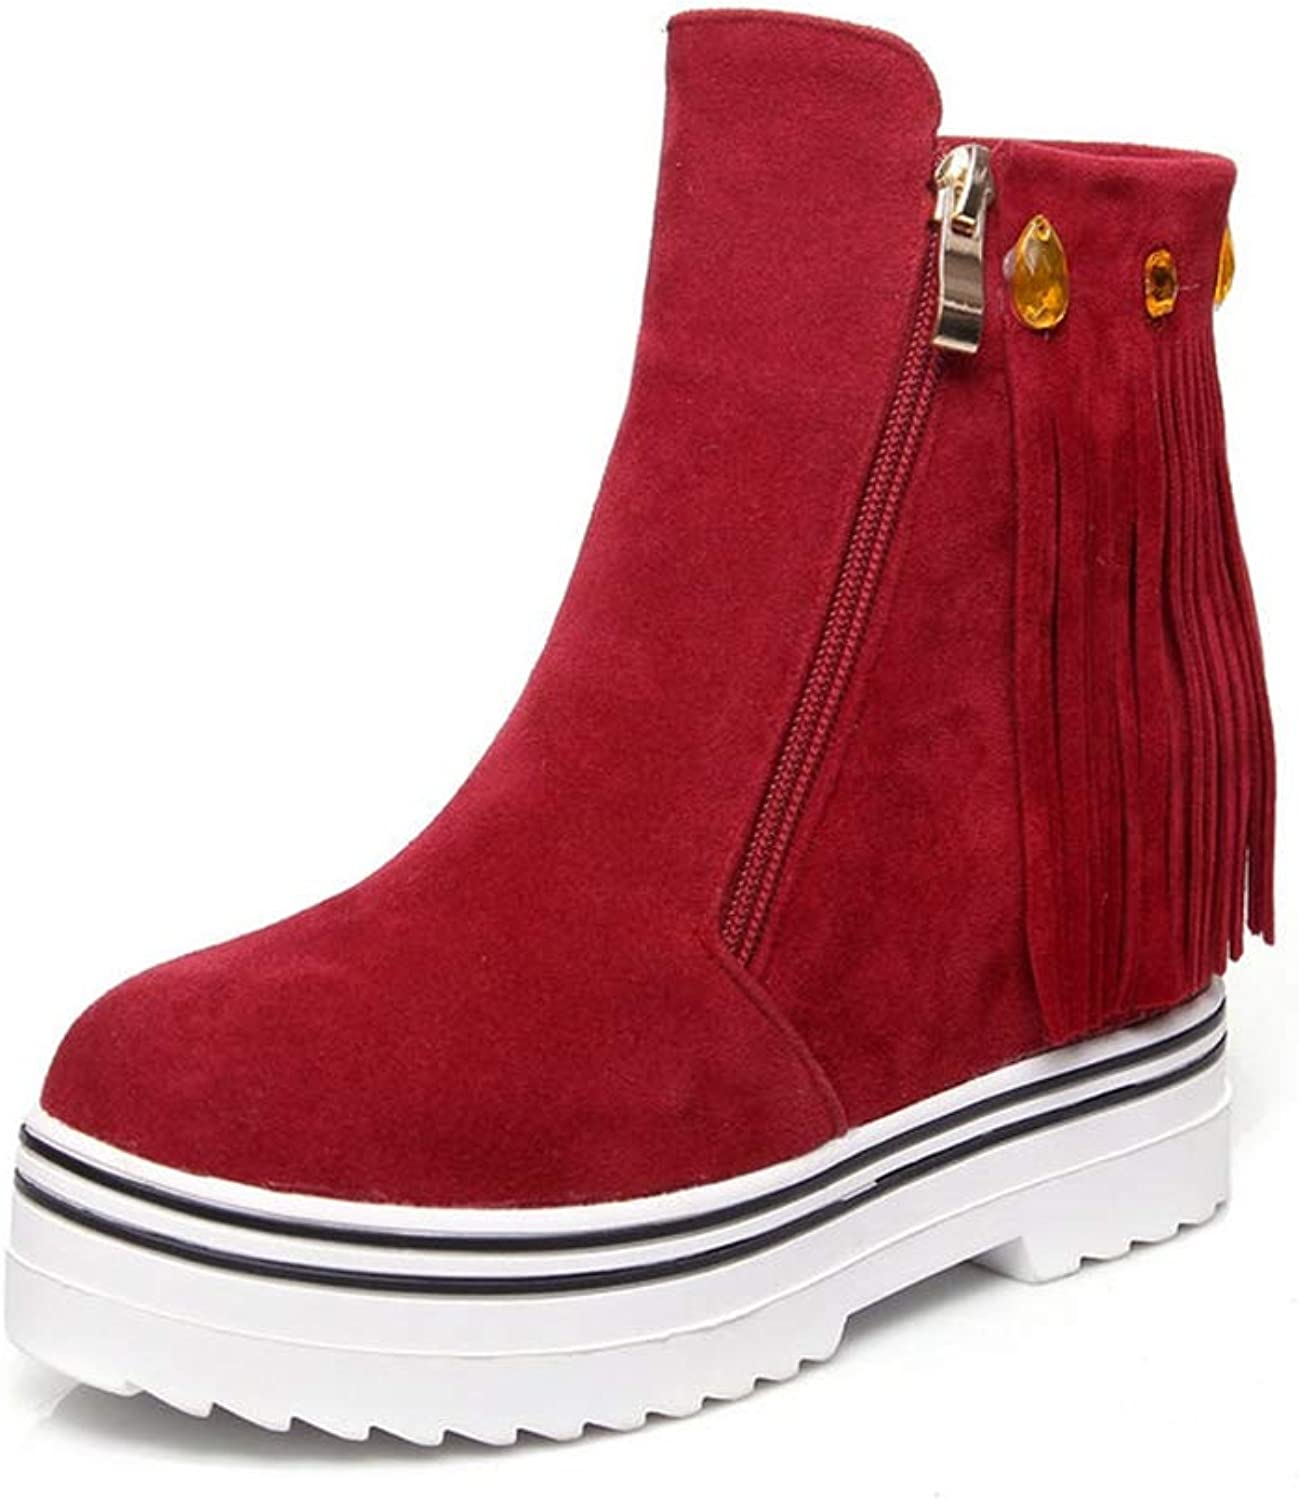 T-JULY Women's PU Soft Leather Restoring Ankle Boots Wedges High Heels Round Toe Platform Black Red Boots Plus Size